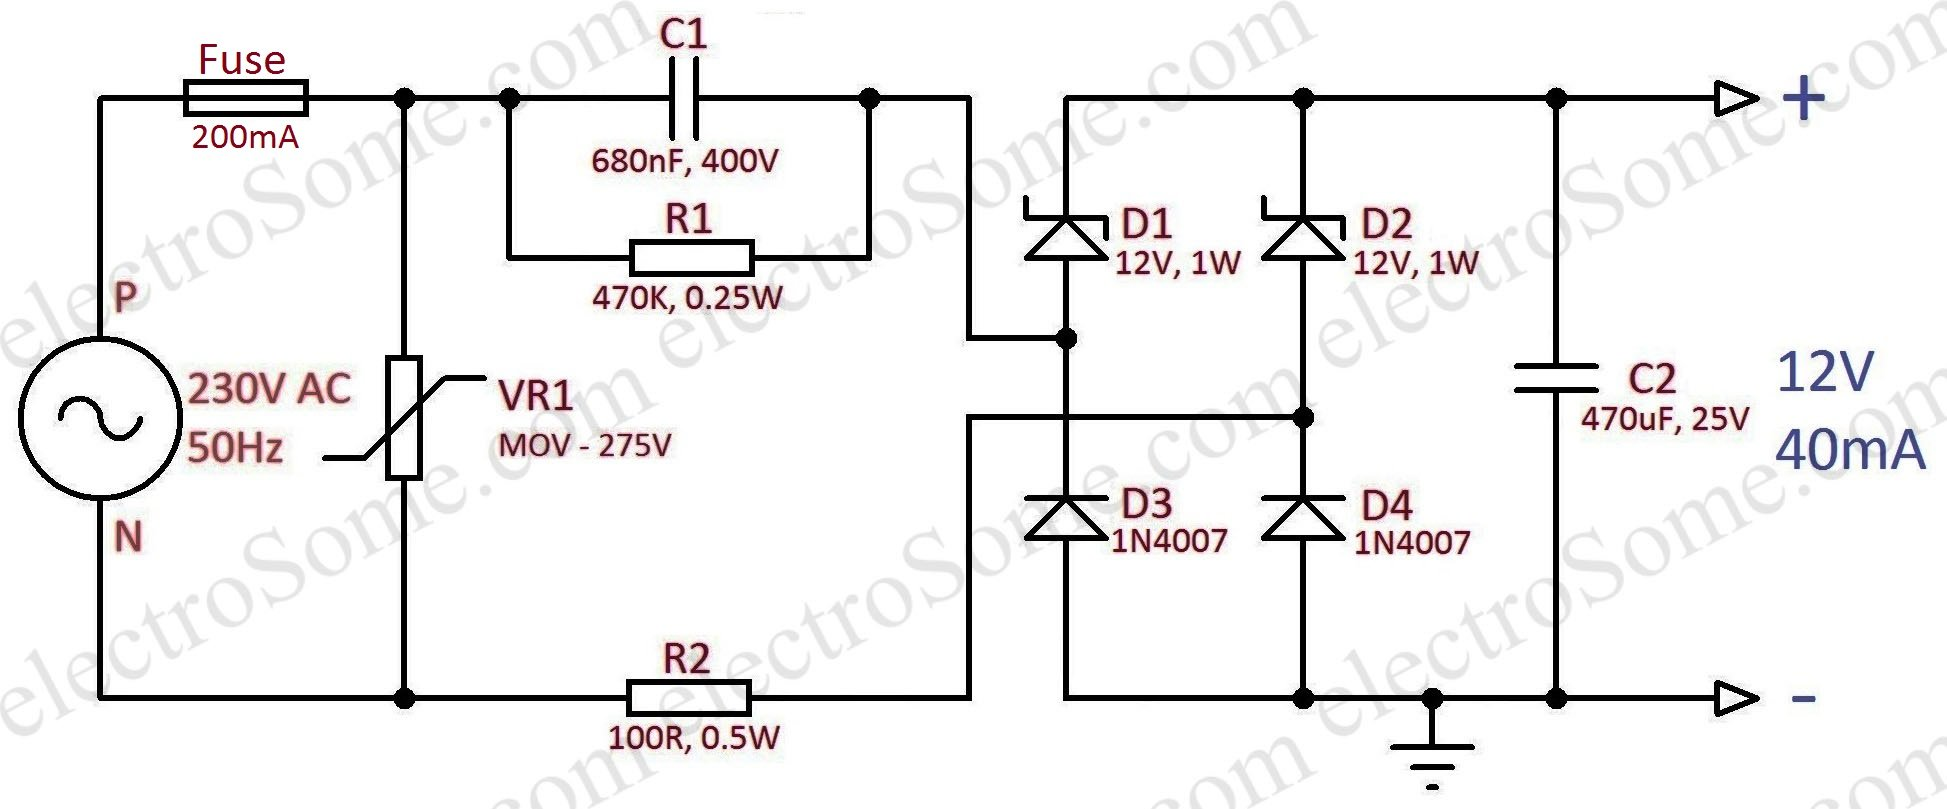 Series Resistorcapacitor Circuits Reactance And Impedance